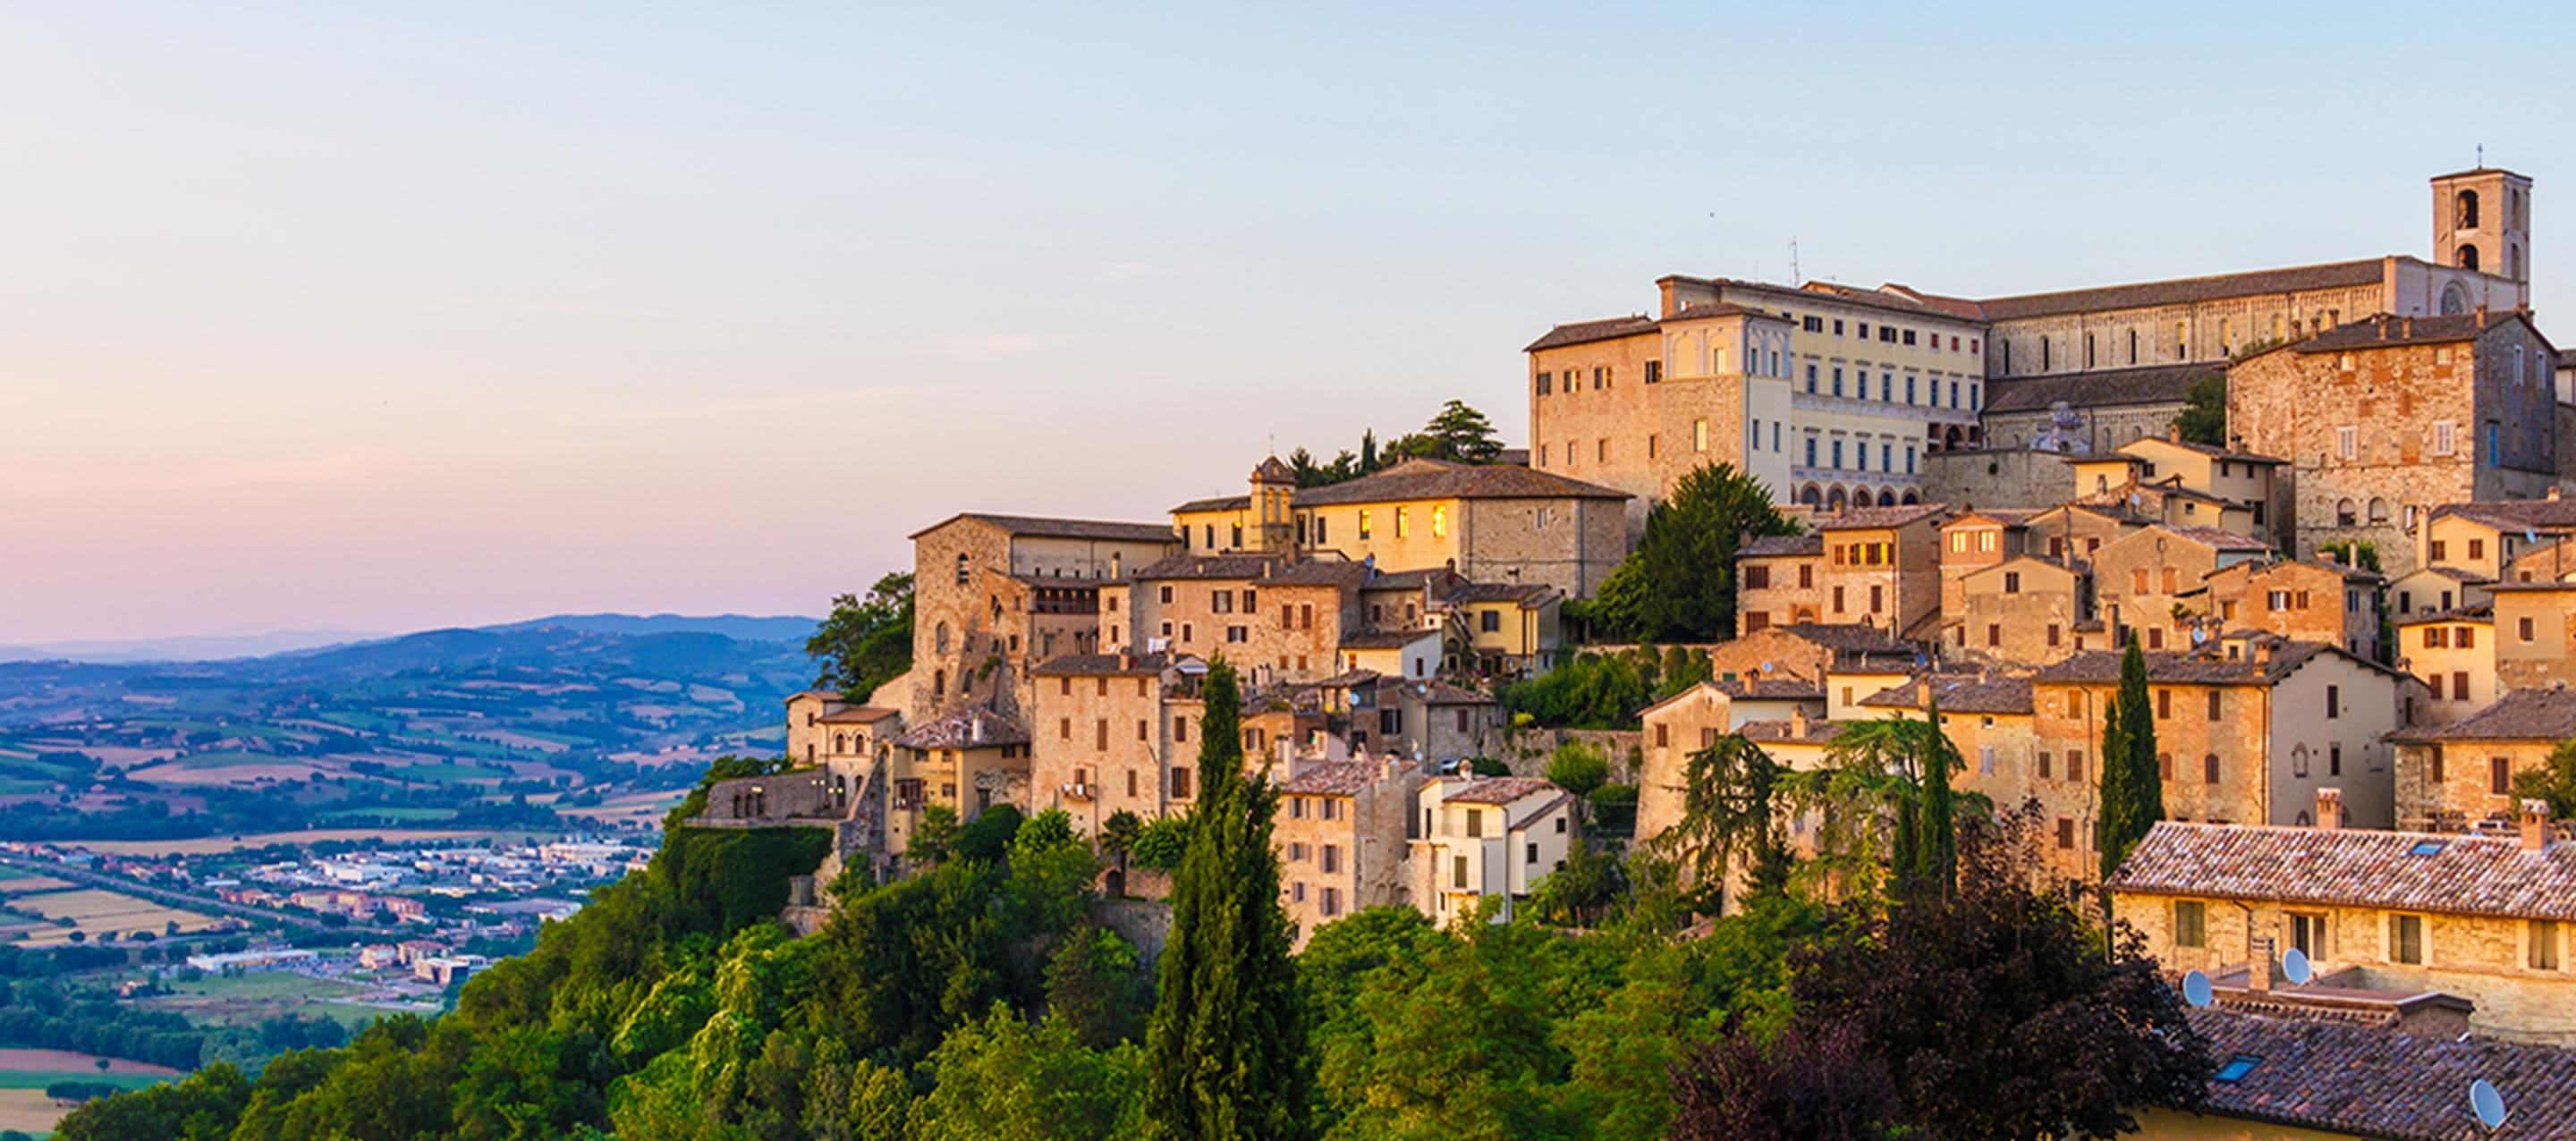 Umbria Region, home of chocolate and gastronomic specialties